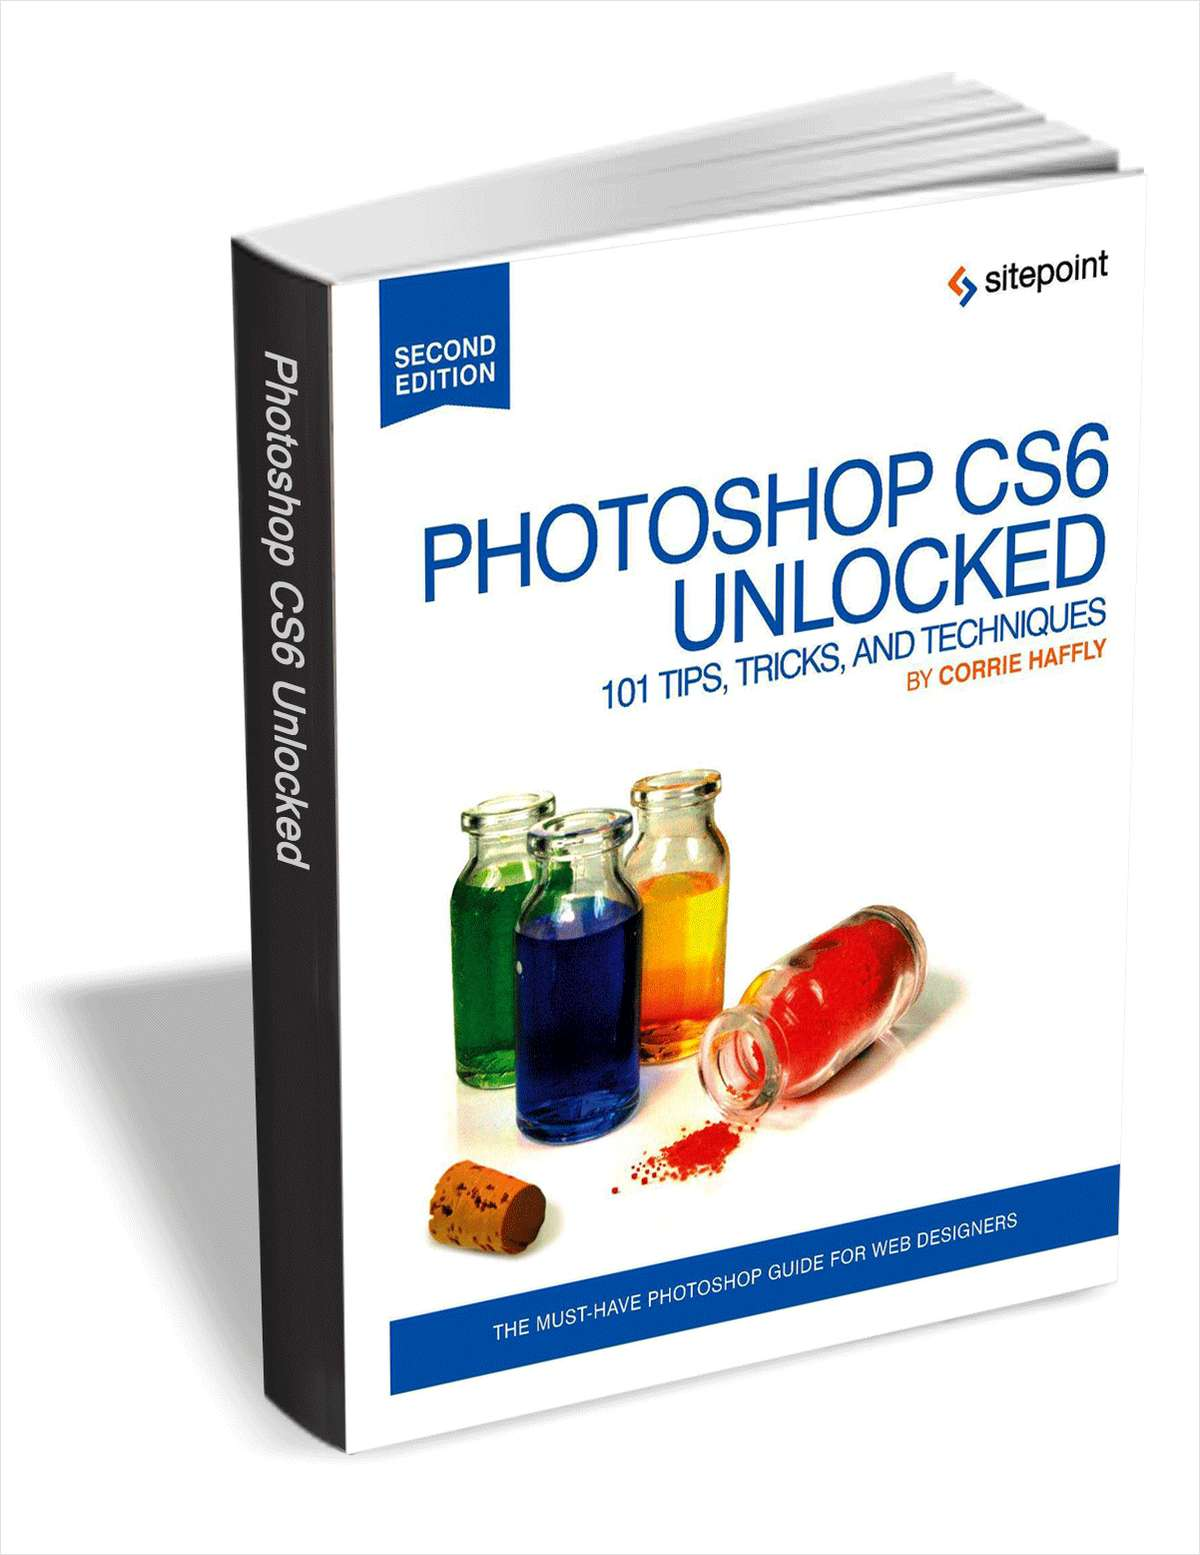 Photoshop CS6 Unlocked - 101 Tips, Tricks, & Techniques ($29 Value FREE For a Limited Time)